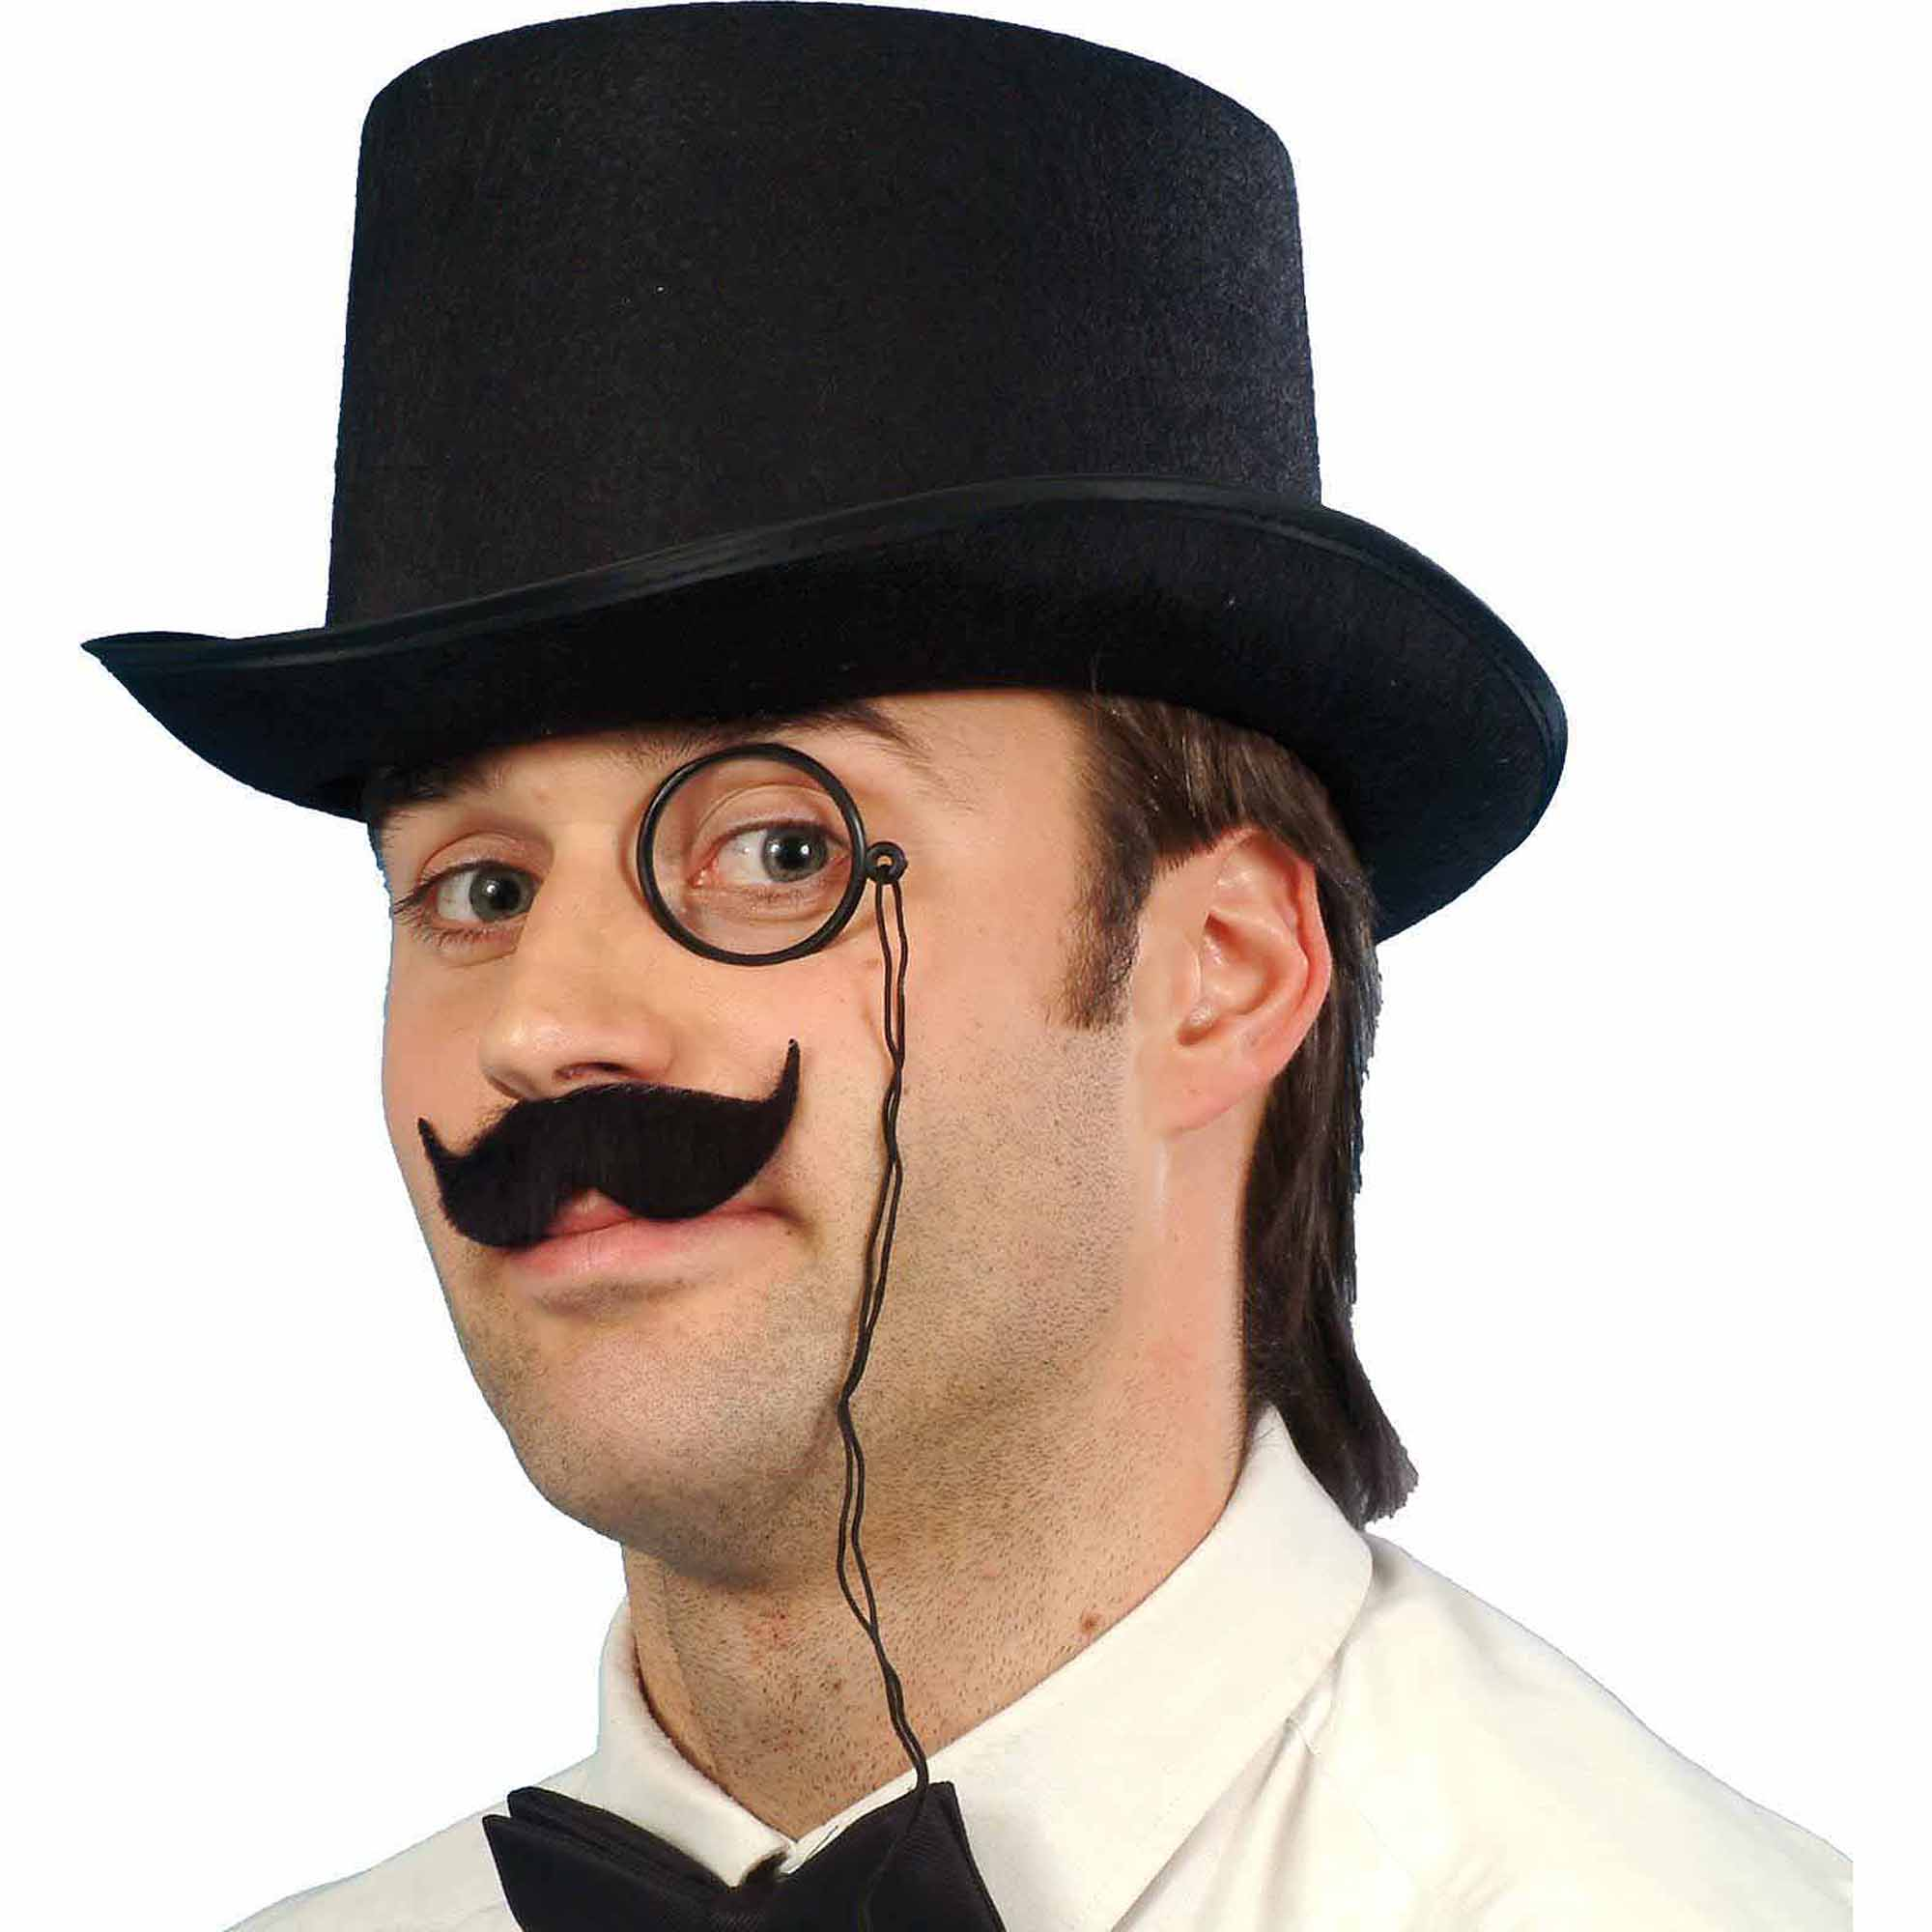 The Durashape Top Hat Adult is a perfect accessory for your Halloween costume this year. Accessorize your costume with our exclusive props, decorations, wigs and many more at Costume SuperCenter. Set your costume above the rest!